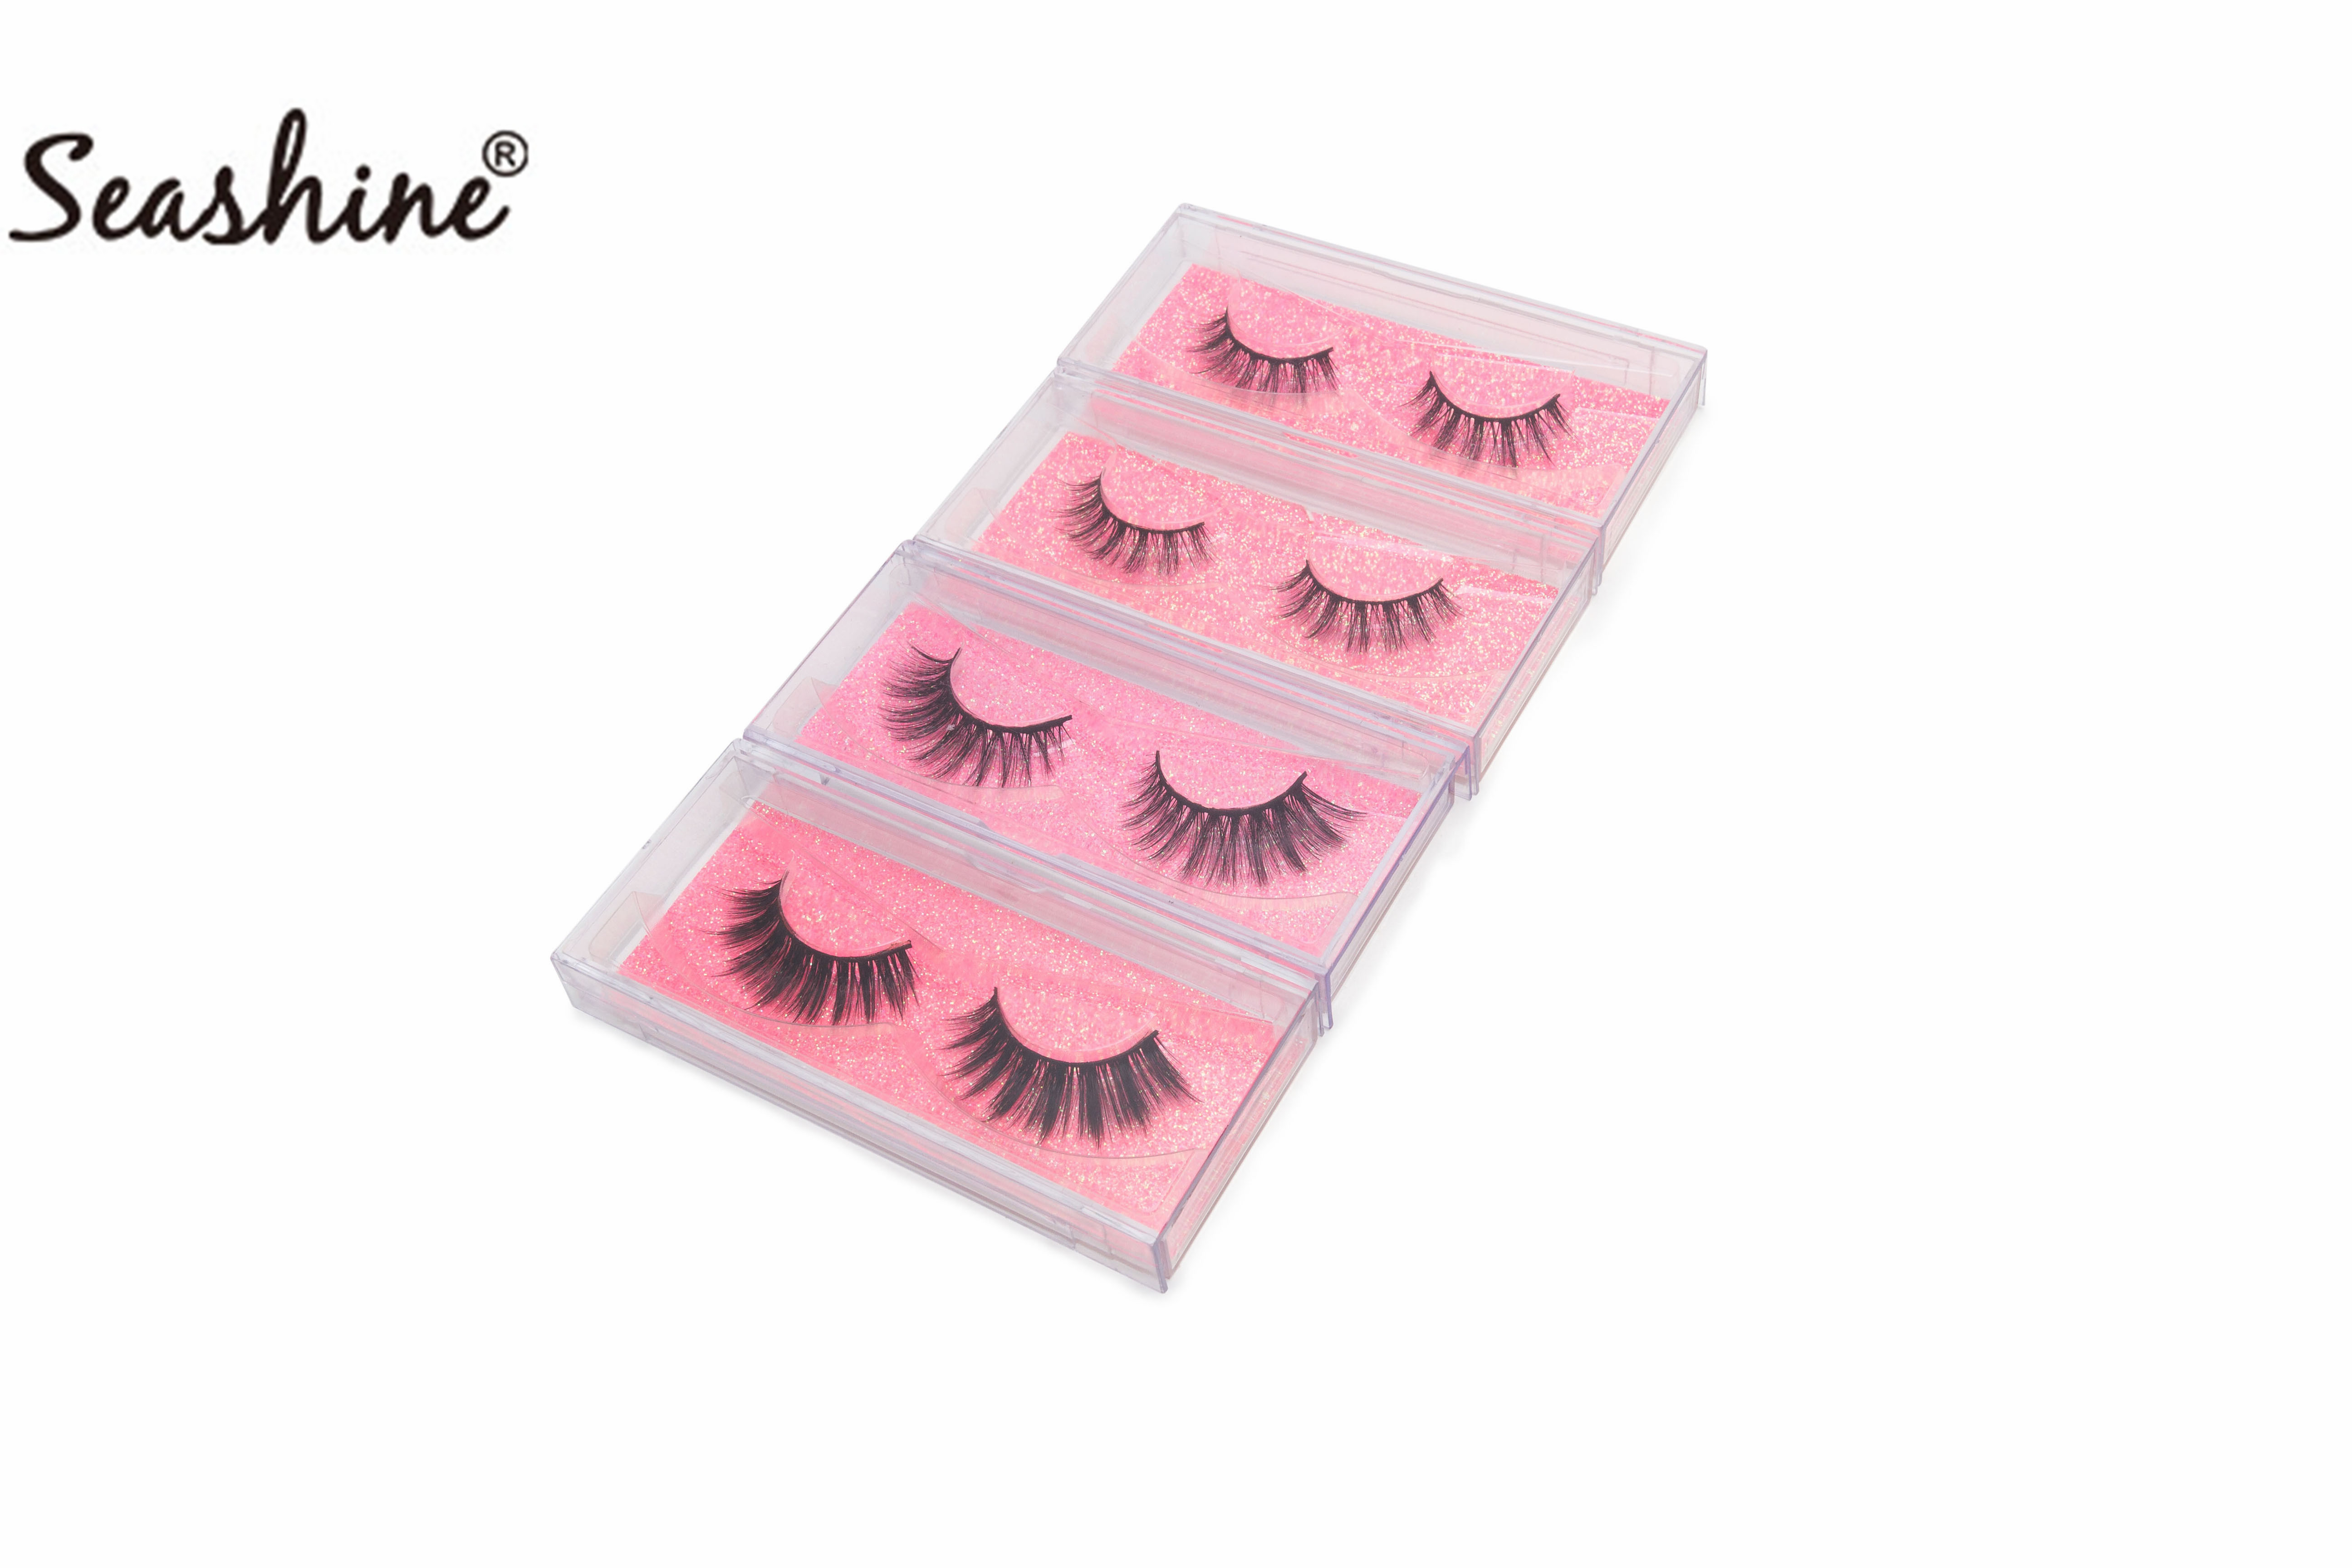 6c314f9d161 Seashine Factory Hand Made 3D Mink Lashes Premium Mink Fur Strip Eyelash  Private Label Customize Brand 3D Mink Eyelashes